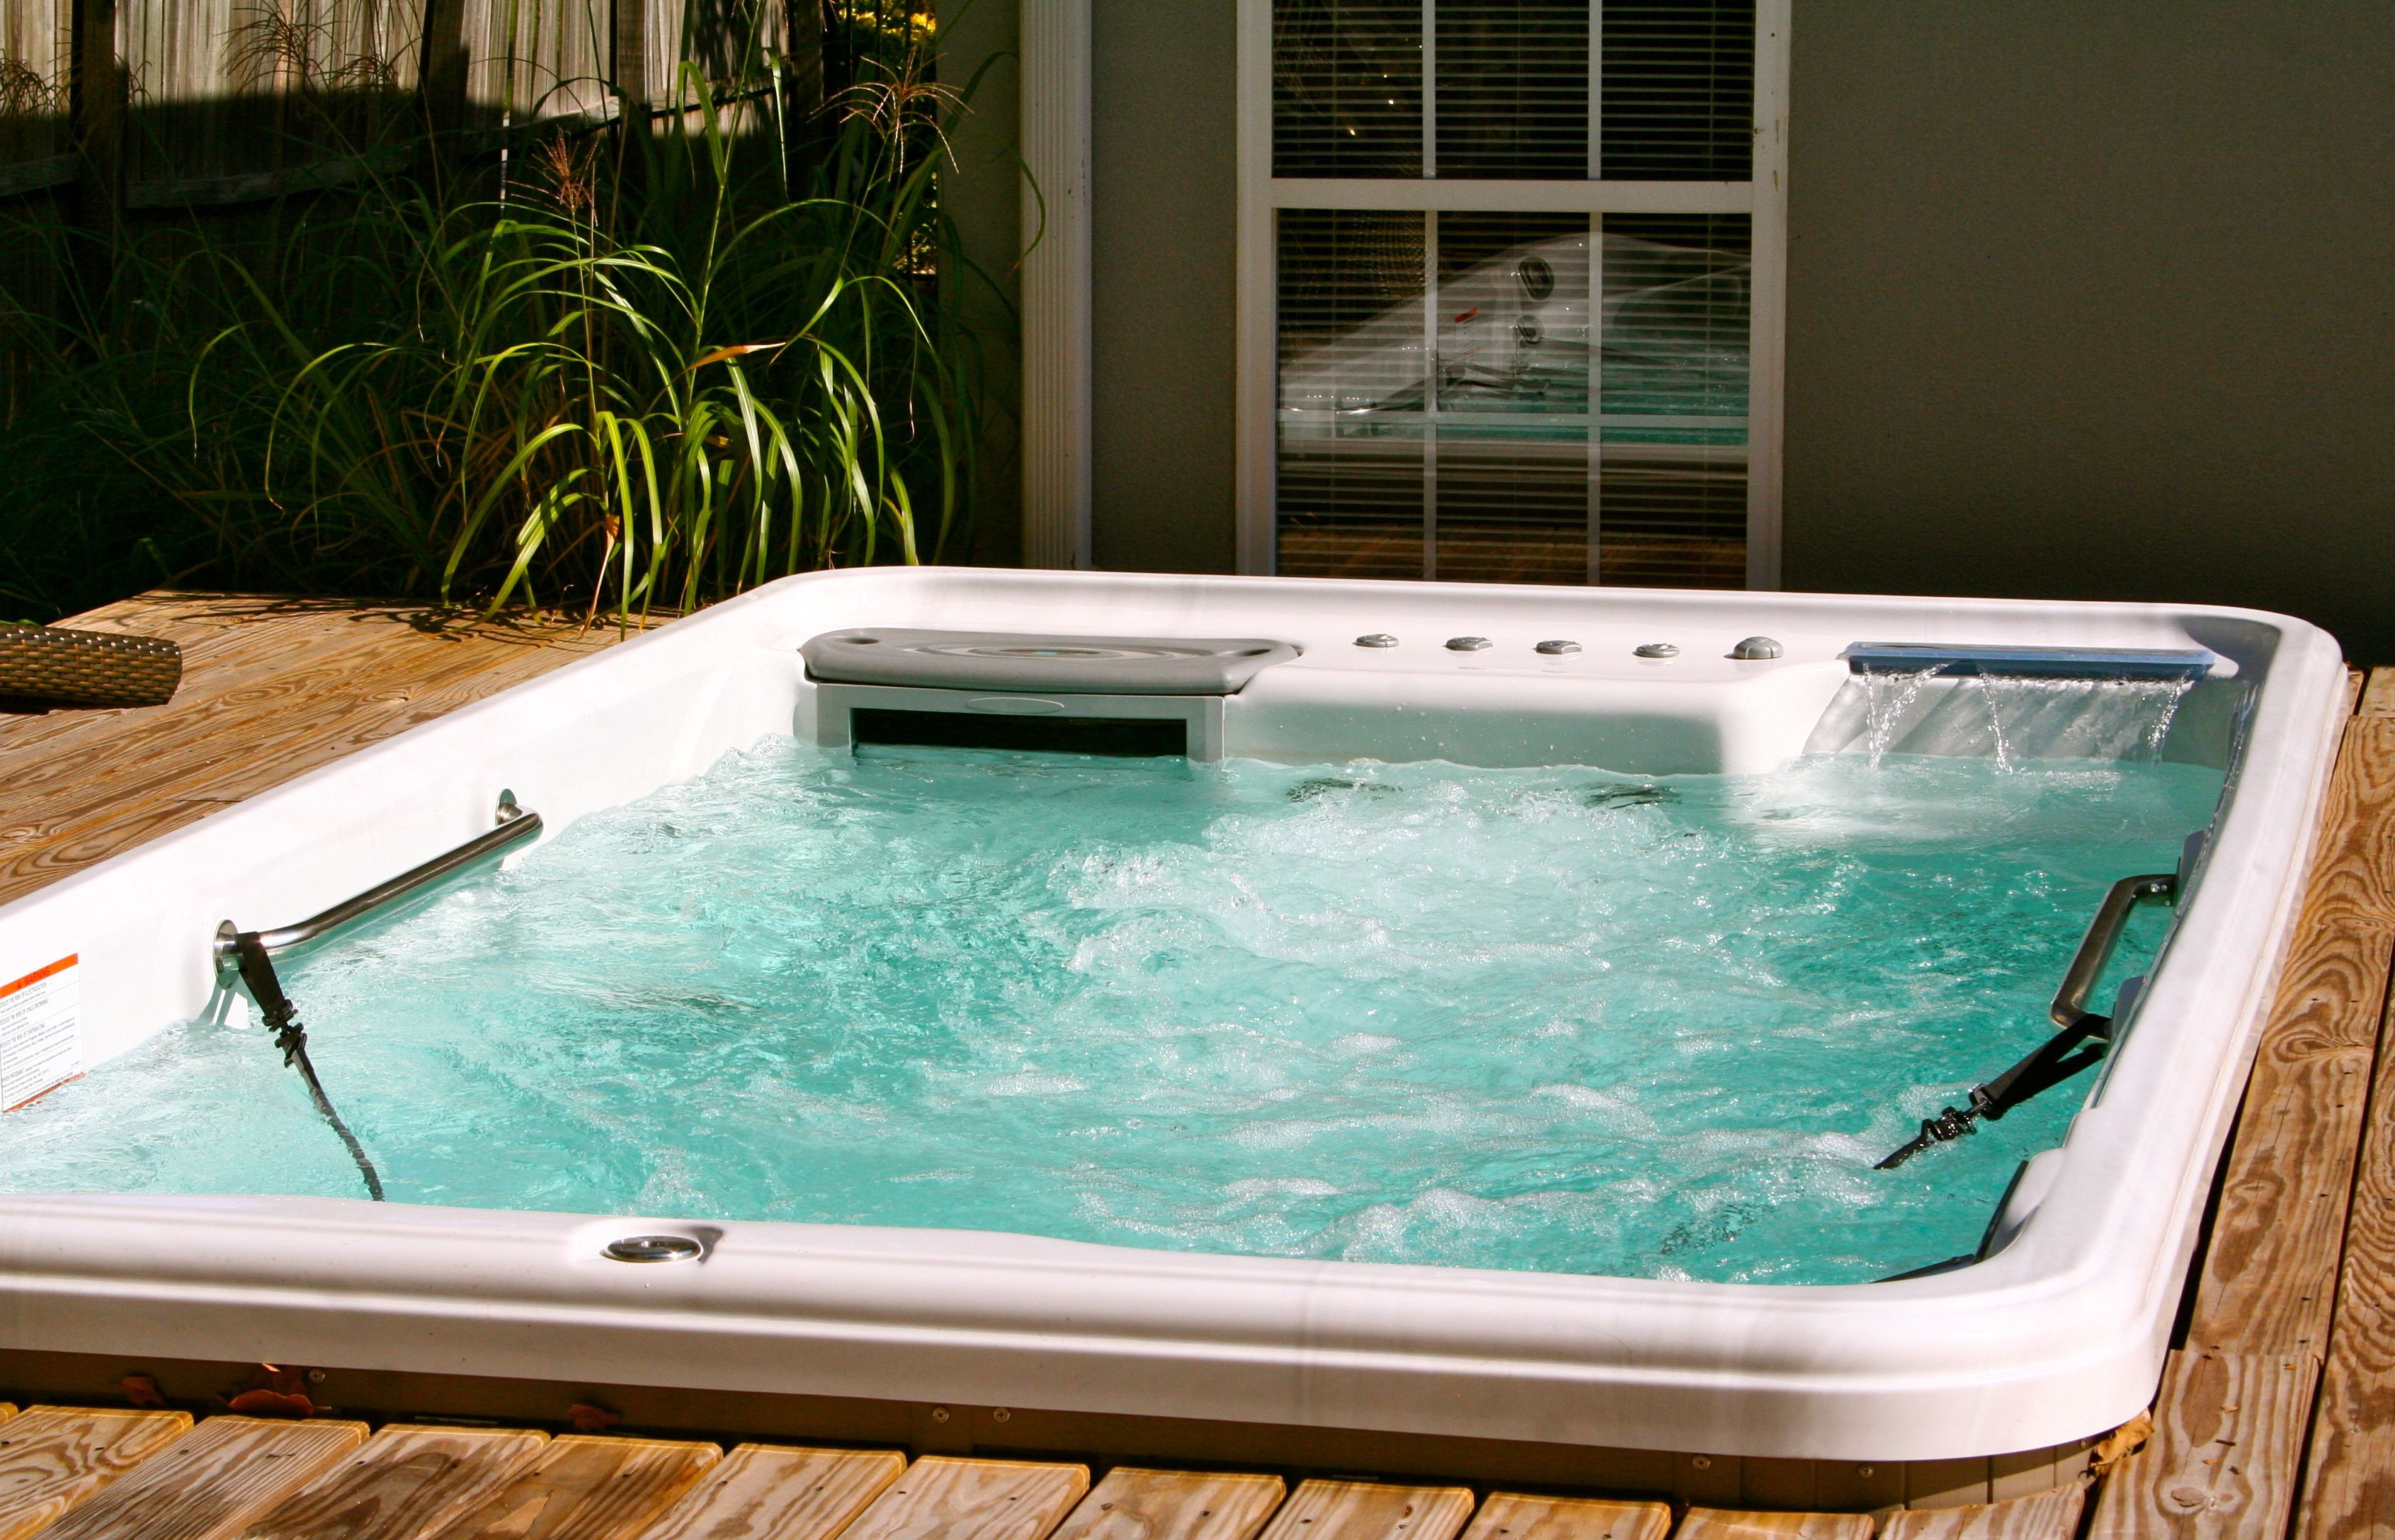 Tidal Fit - hydrotherapy spa | Hot Tubs & Spas | Pinterest | Spa ...